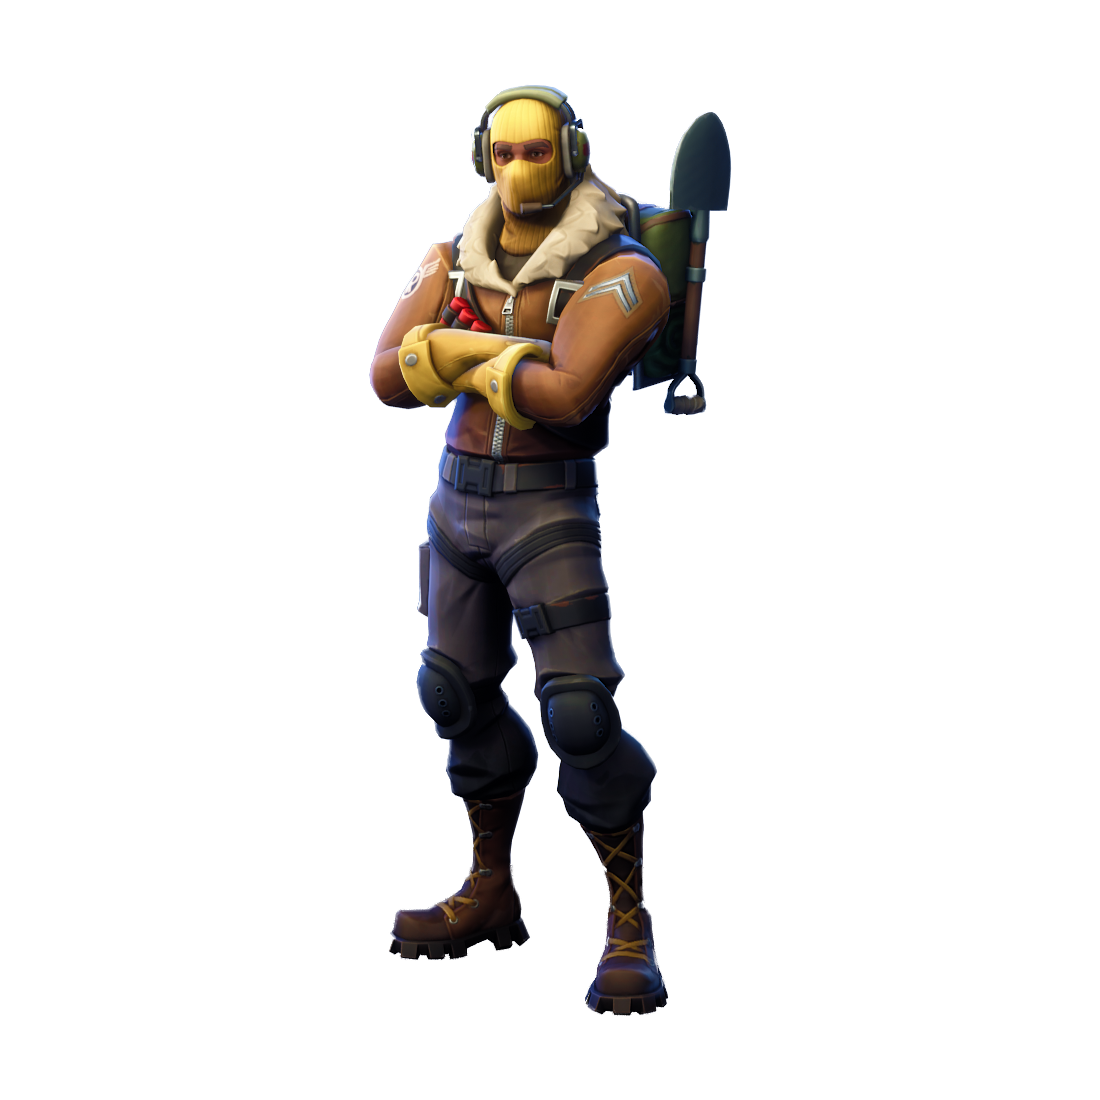 Raptor image purepng free. Take the l fortnite png graphic stock